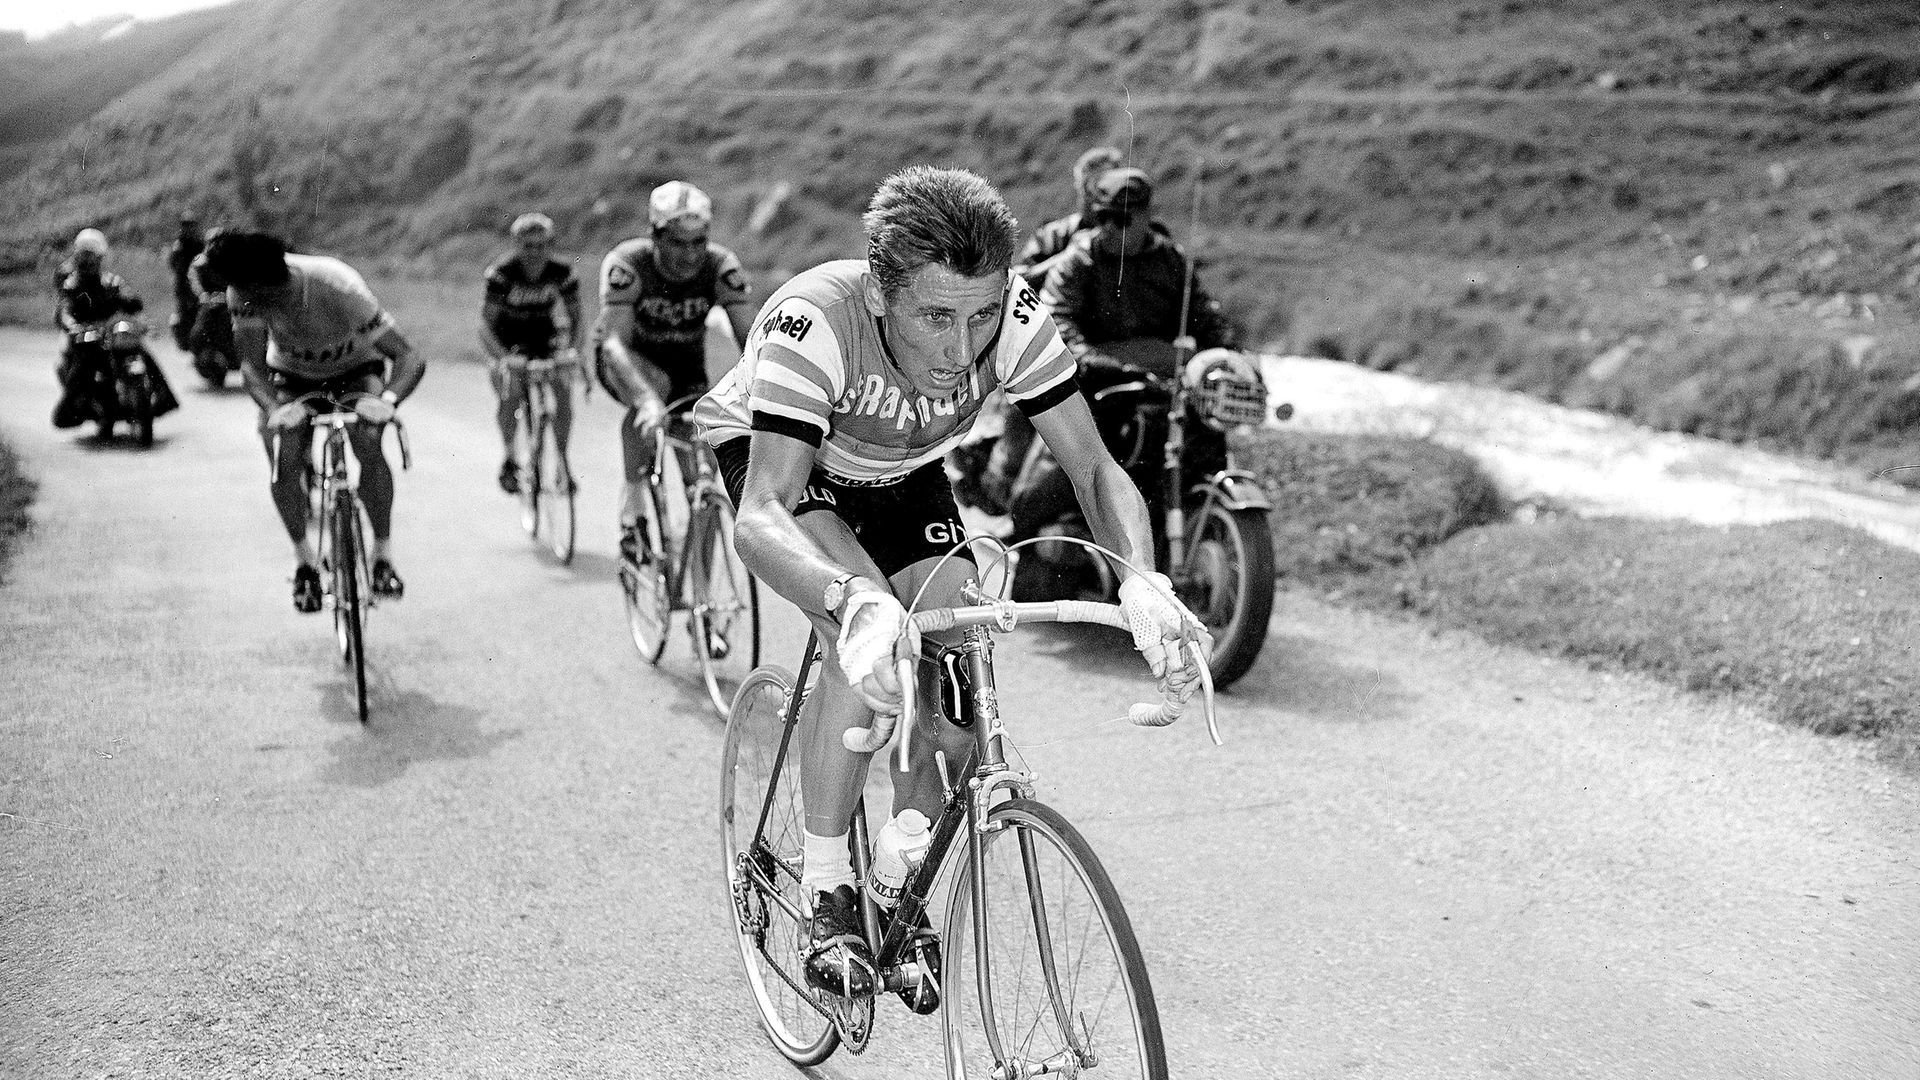 Jacques Anquetil, centre, and rival Raymond Poulidor during one of their Tour de France battles - Credit: Roger Viollet via Getty Images